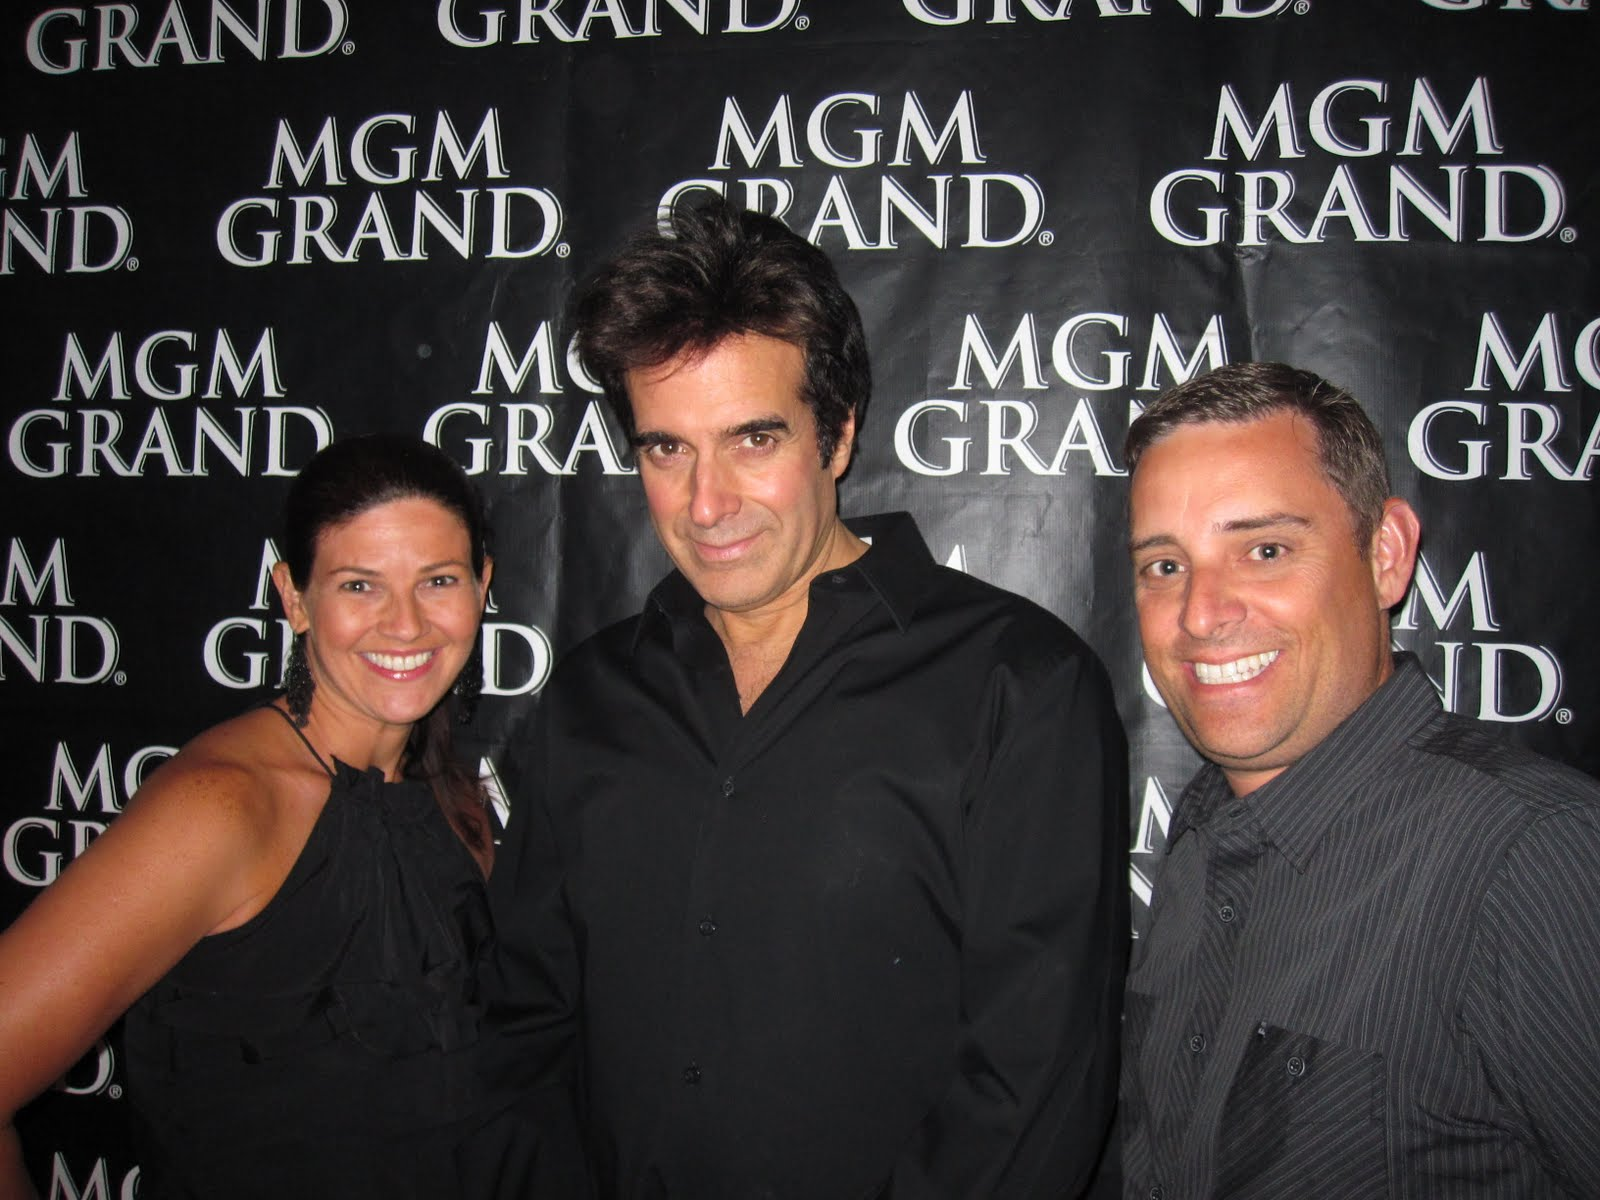 One foot in front of the other turn back time we ended up at david copperfield and the show was unreal we were invited for a meet n greet after the show and he did the coolest magic trick right in m4hsunfo